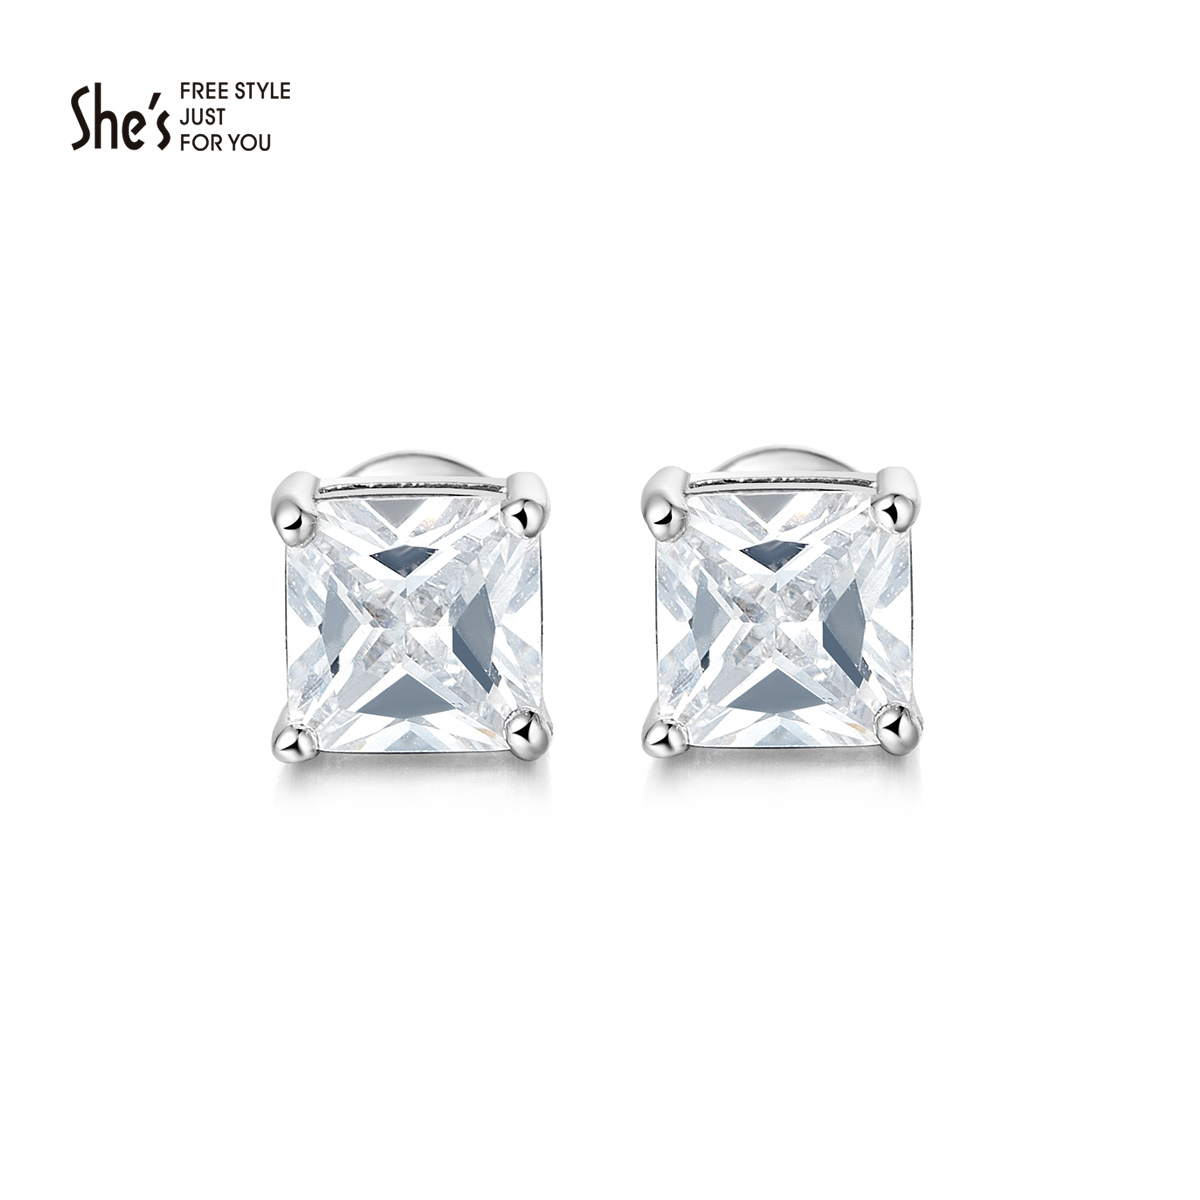 Shes sin child zirconia earrings exquisite small square earrings ear jewelry fashion boutique women